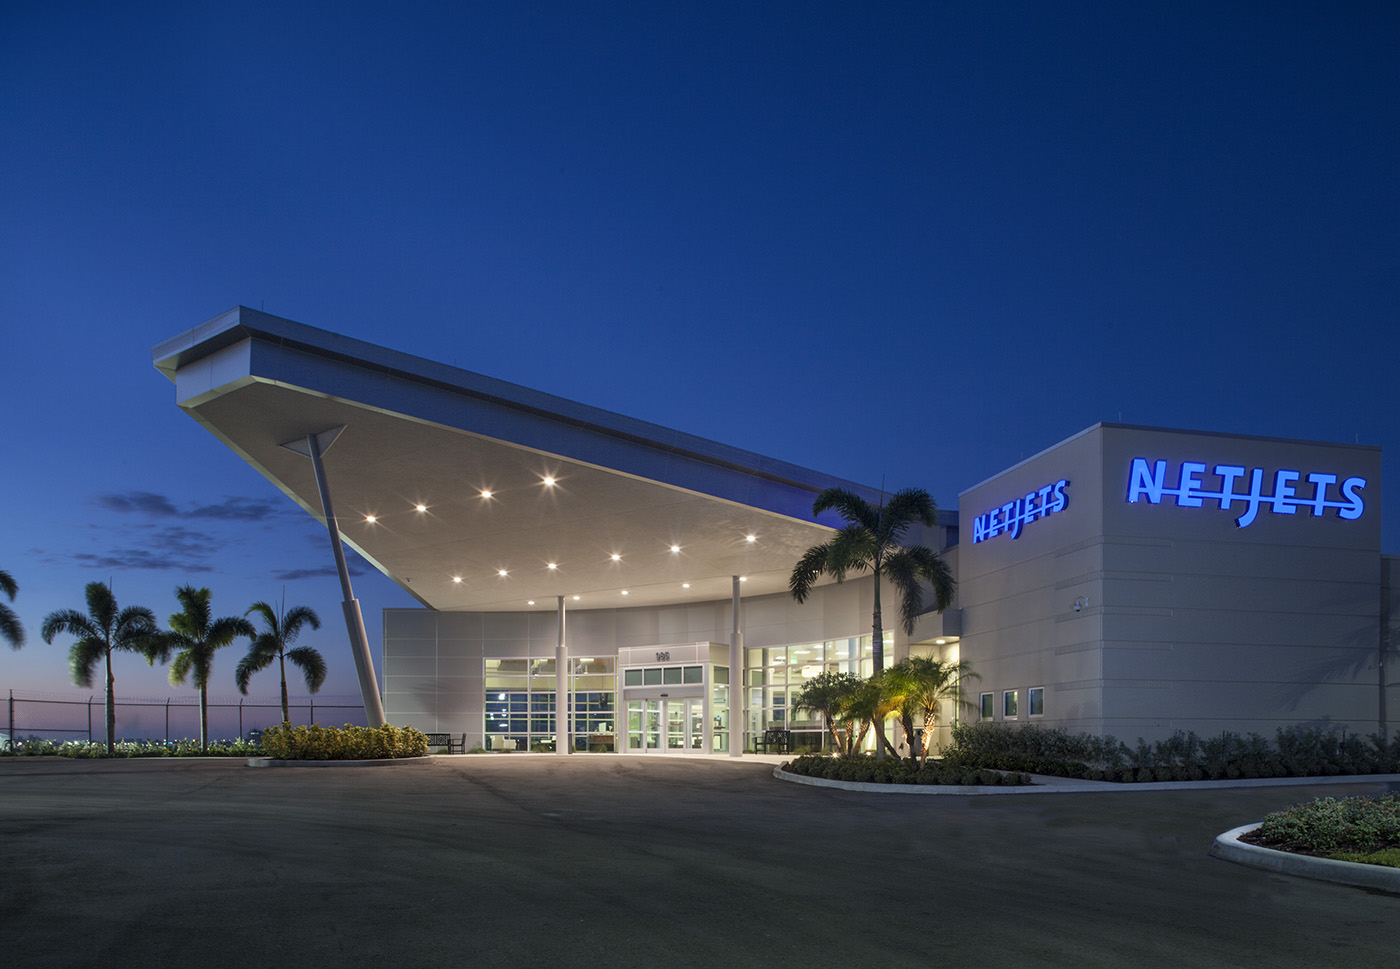 Our electrical contracting firm in Palm City was honored to be the primary electrical contractor for the Netjets Aviation Terminal